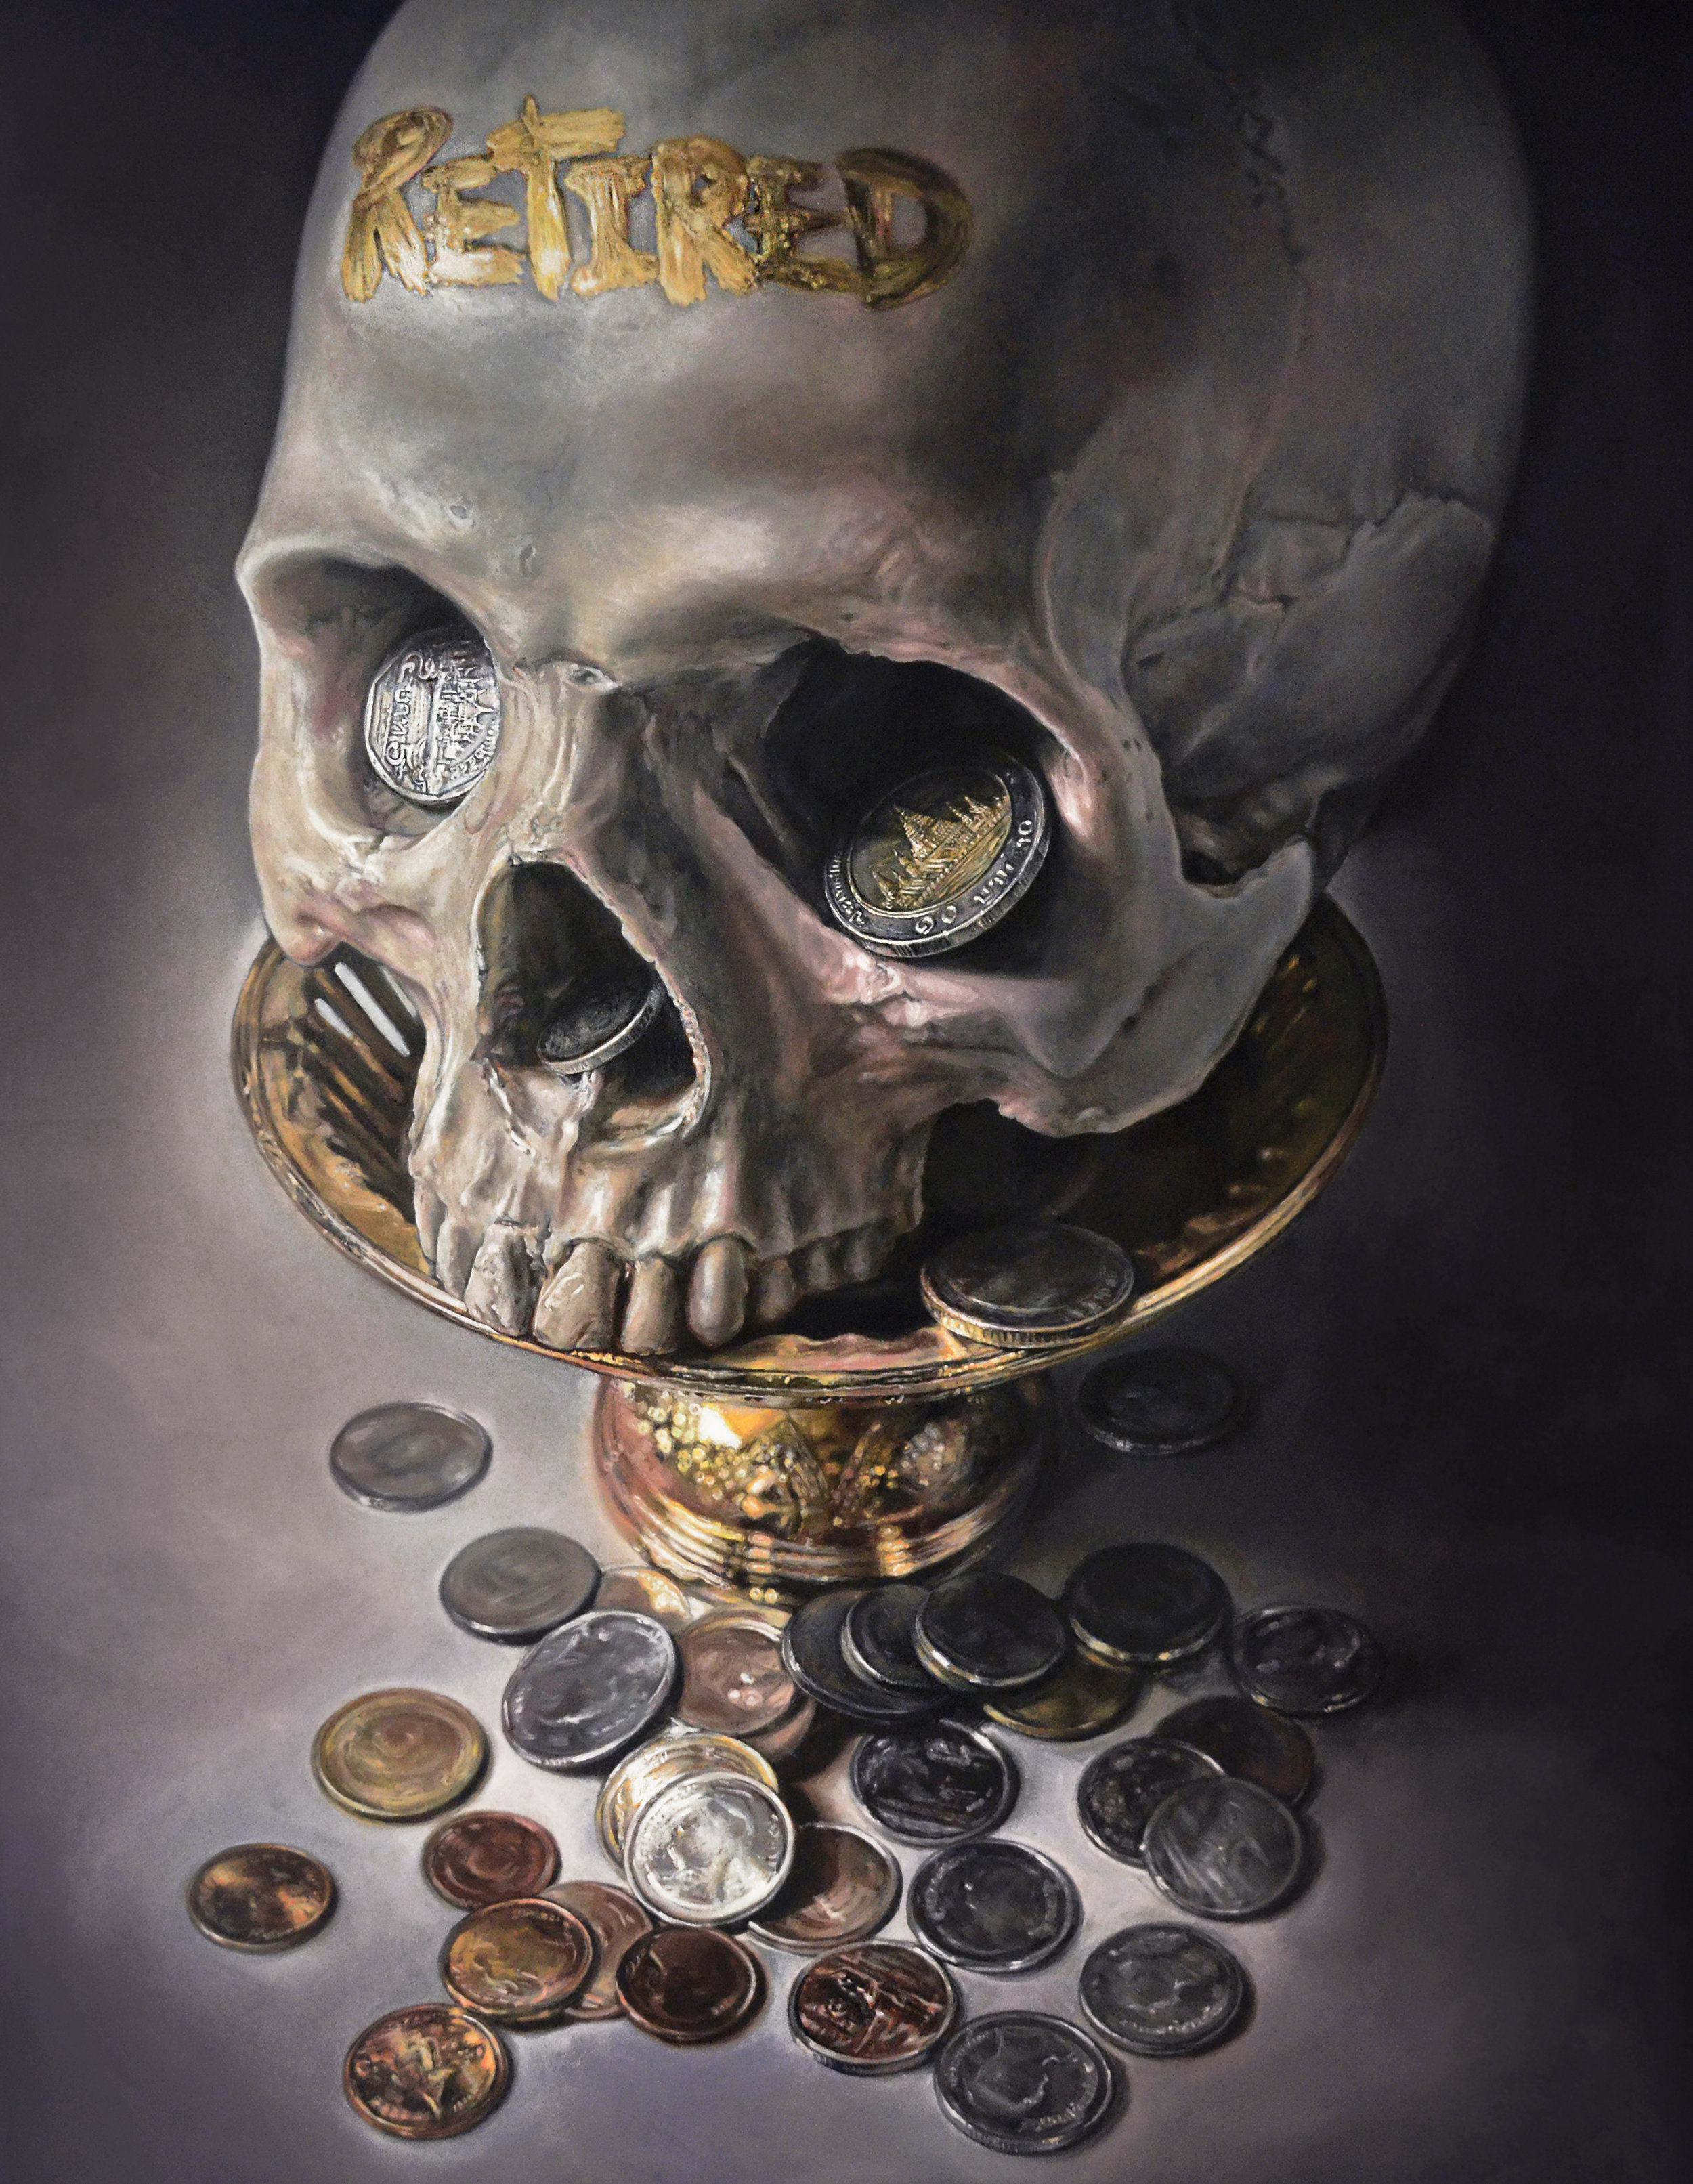 Title: Price of Eternity  Year: 2018  Size: 180x130 cm  Technique: Oil on canvas